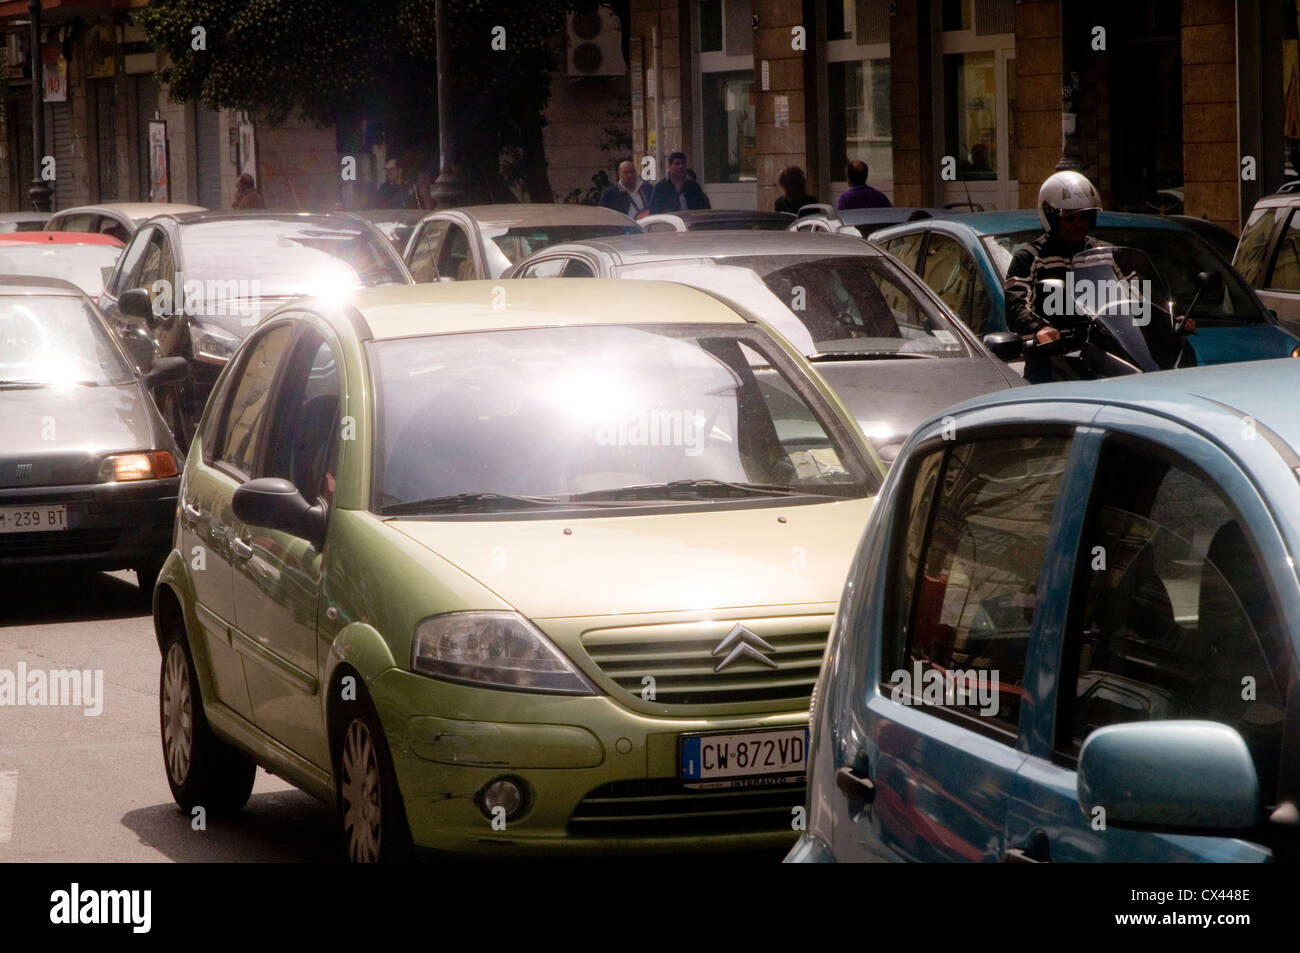 crazy italian traffic jam jams italy small car cars driving in italy city cities sorrento bumper to bumpers busy - Stock Image